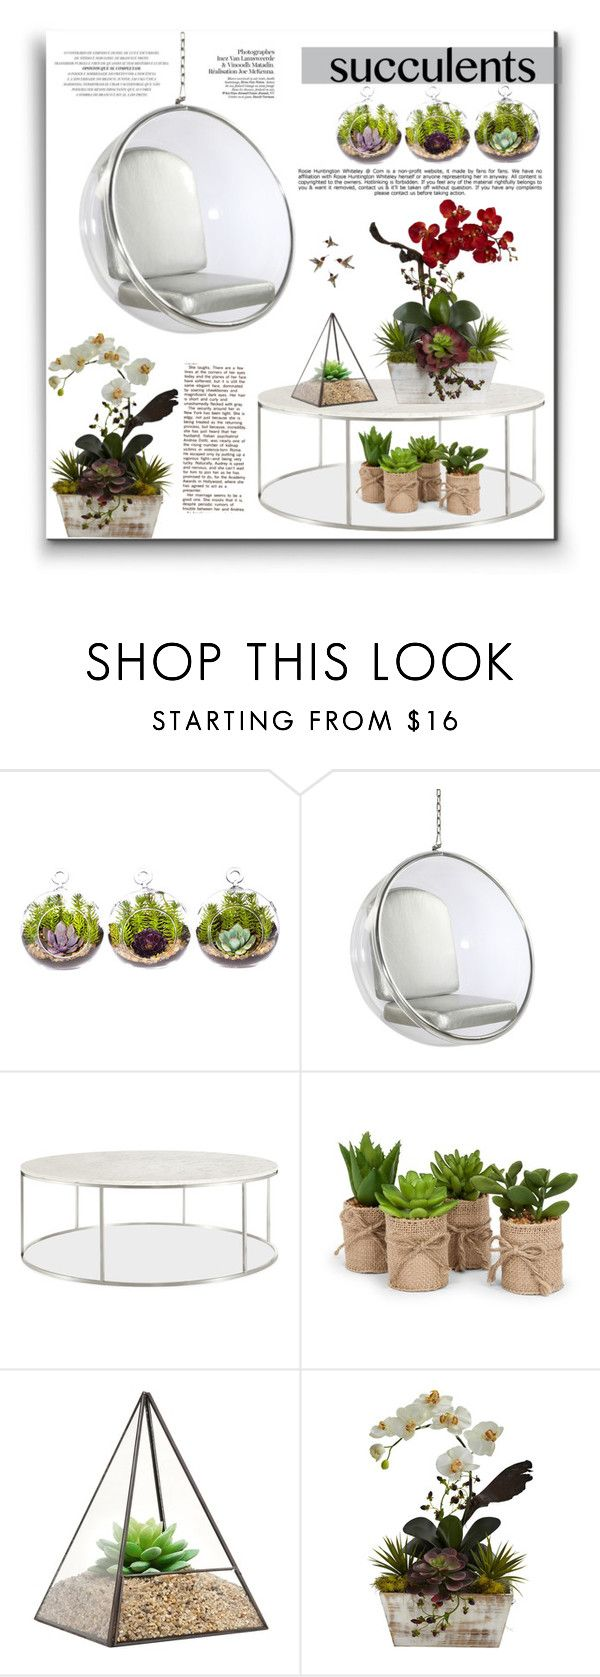 """""""Cacti + Succulents"""" by alinnas on Polyvore featuring interior, interiors, interior design, home, home decor, interior decorating, Dot & Bo, Nearly Natural, Whiteley and succulents"""